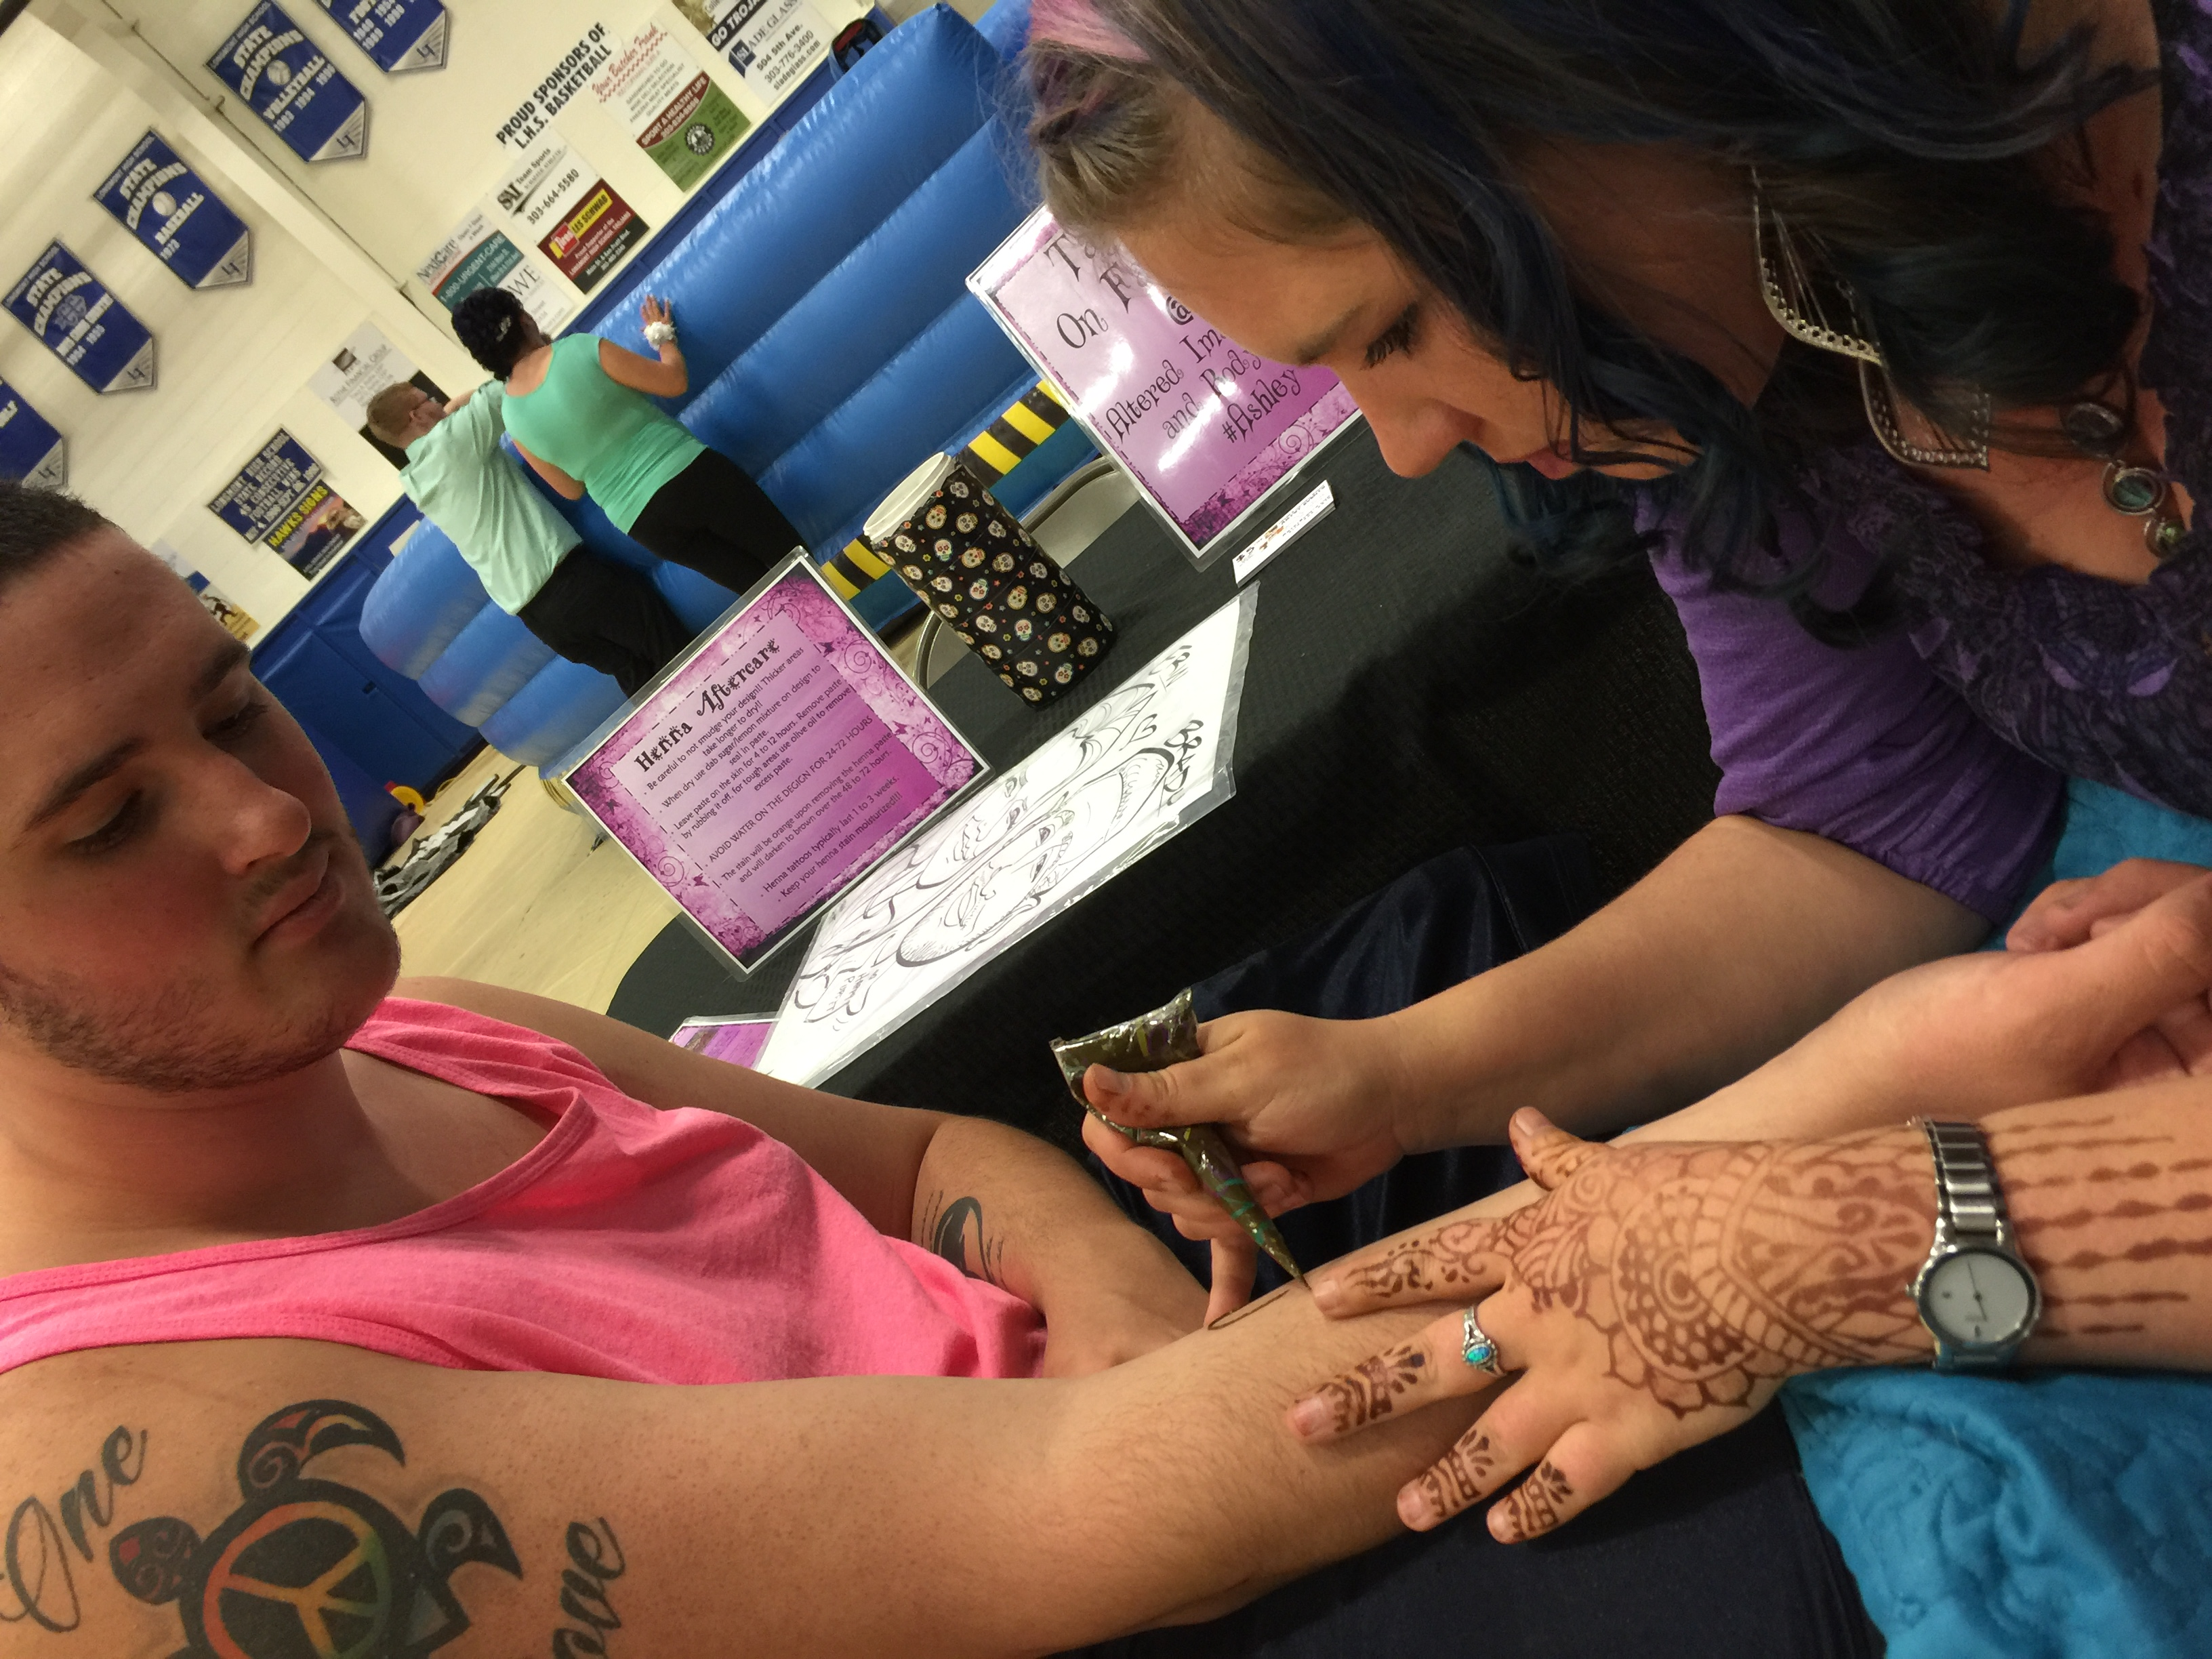 Henna Tattoos or Airbrush Tattoos For TX Parties & Events